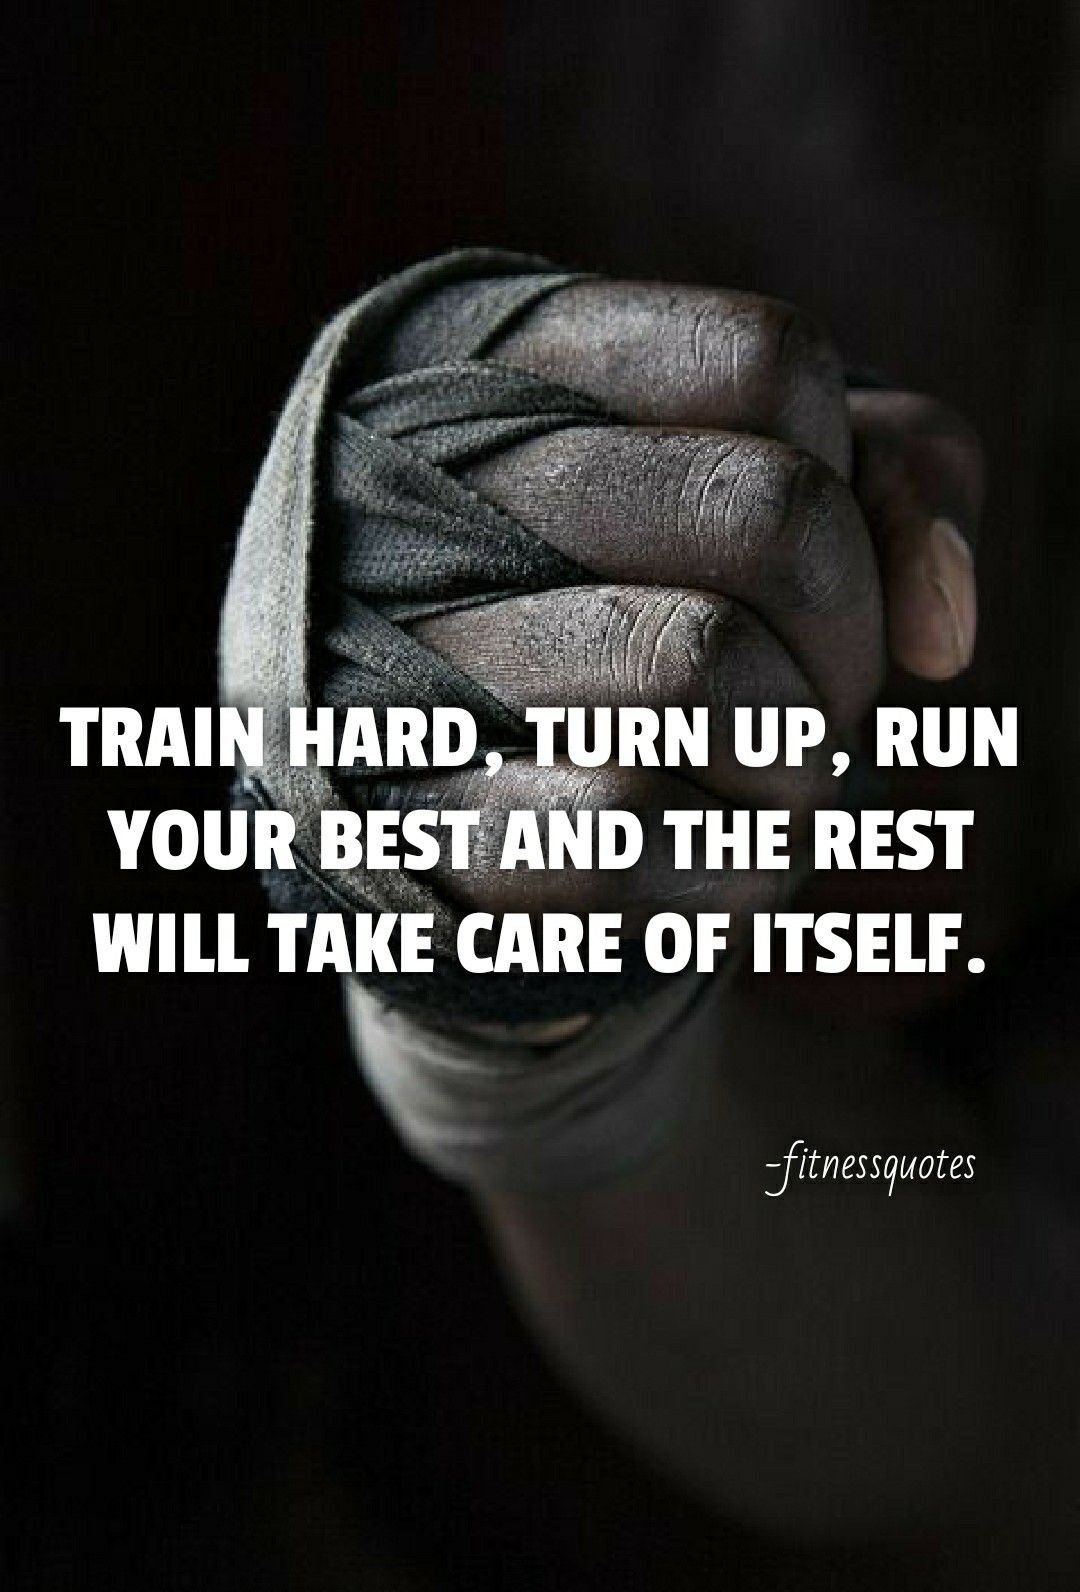 Pin By Quotes Mafia On Fitness Quotes Kickboxing Quotes Kickboxing Motivation Motivational Quotes For Working Out